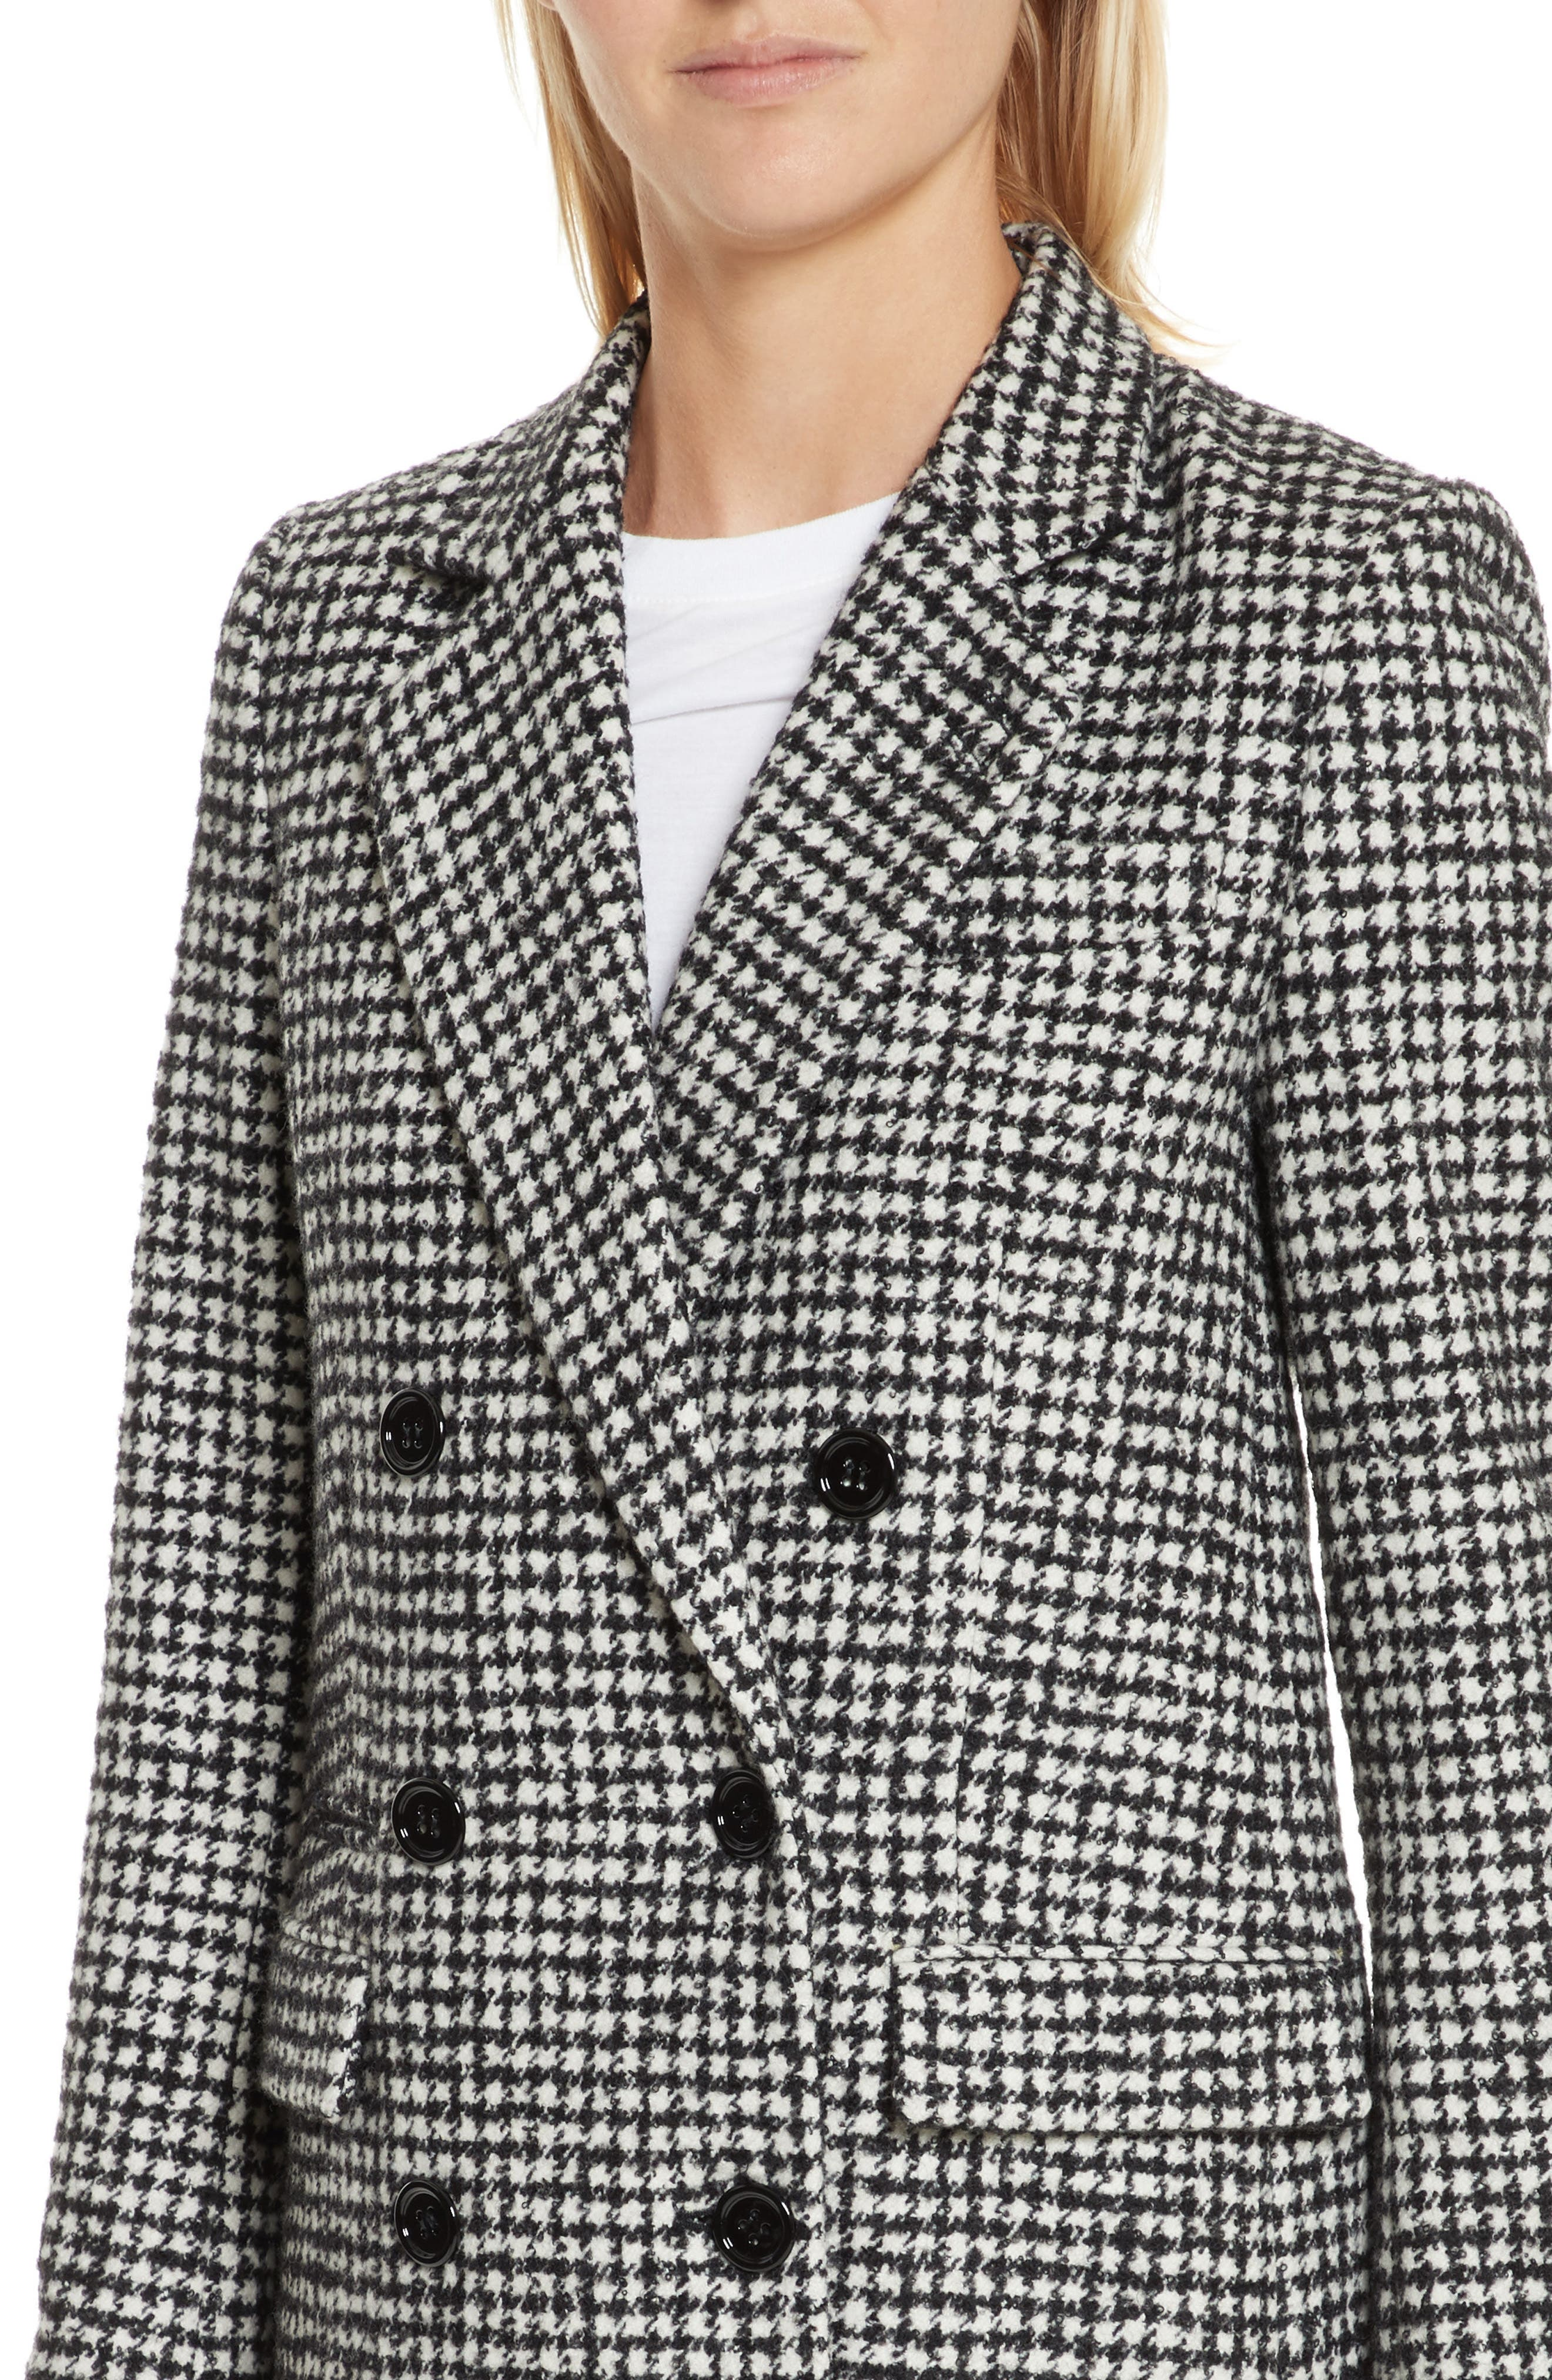 Double-Breasted Wool Blend Coat,                             Alternate thumbnail 4, color,                             001